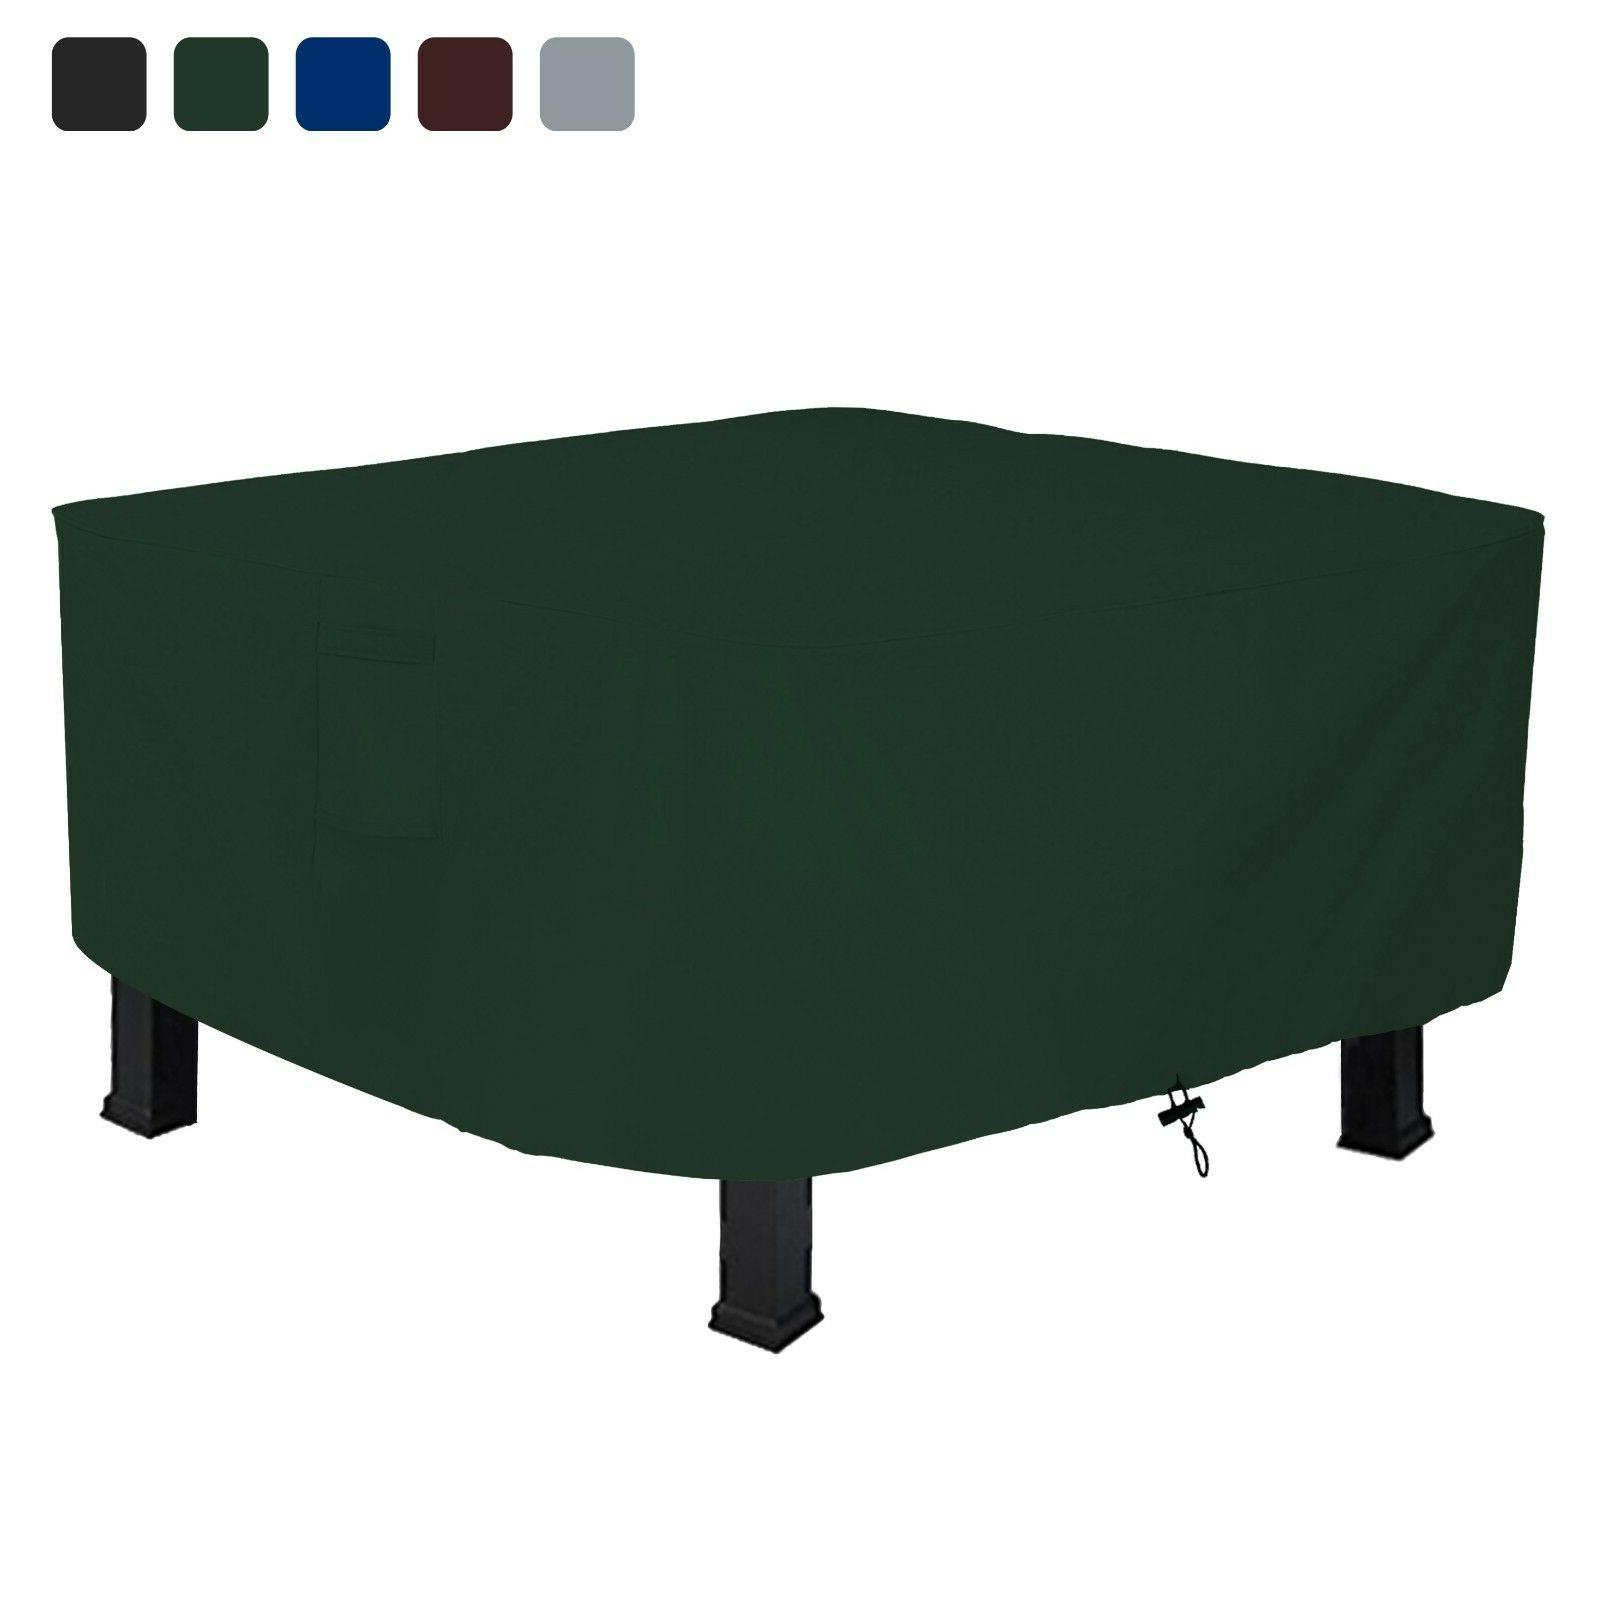 firepit cover square 18 oz waterproof uv